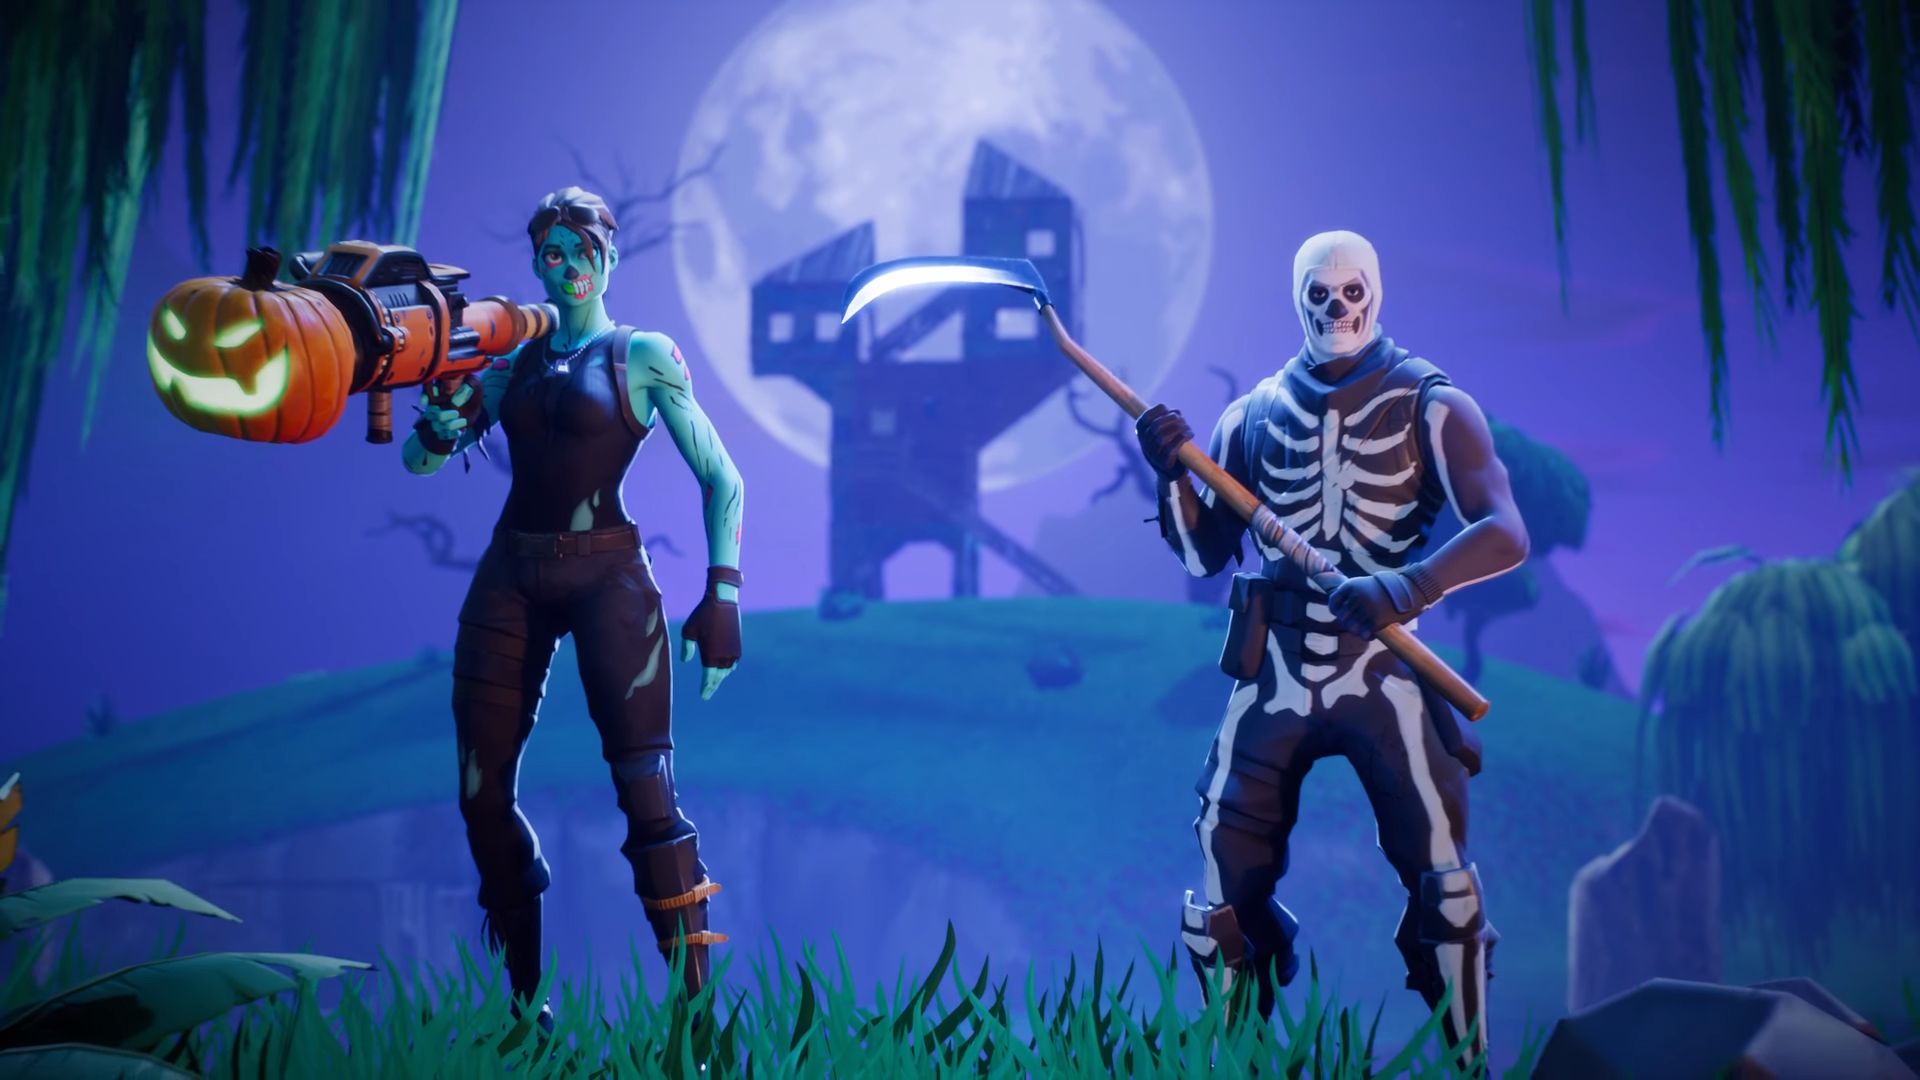 Fortnite Wallpaper Png